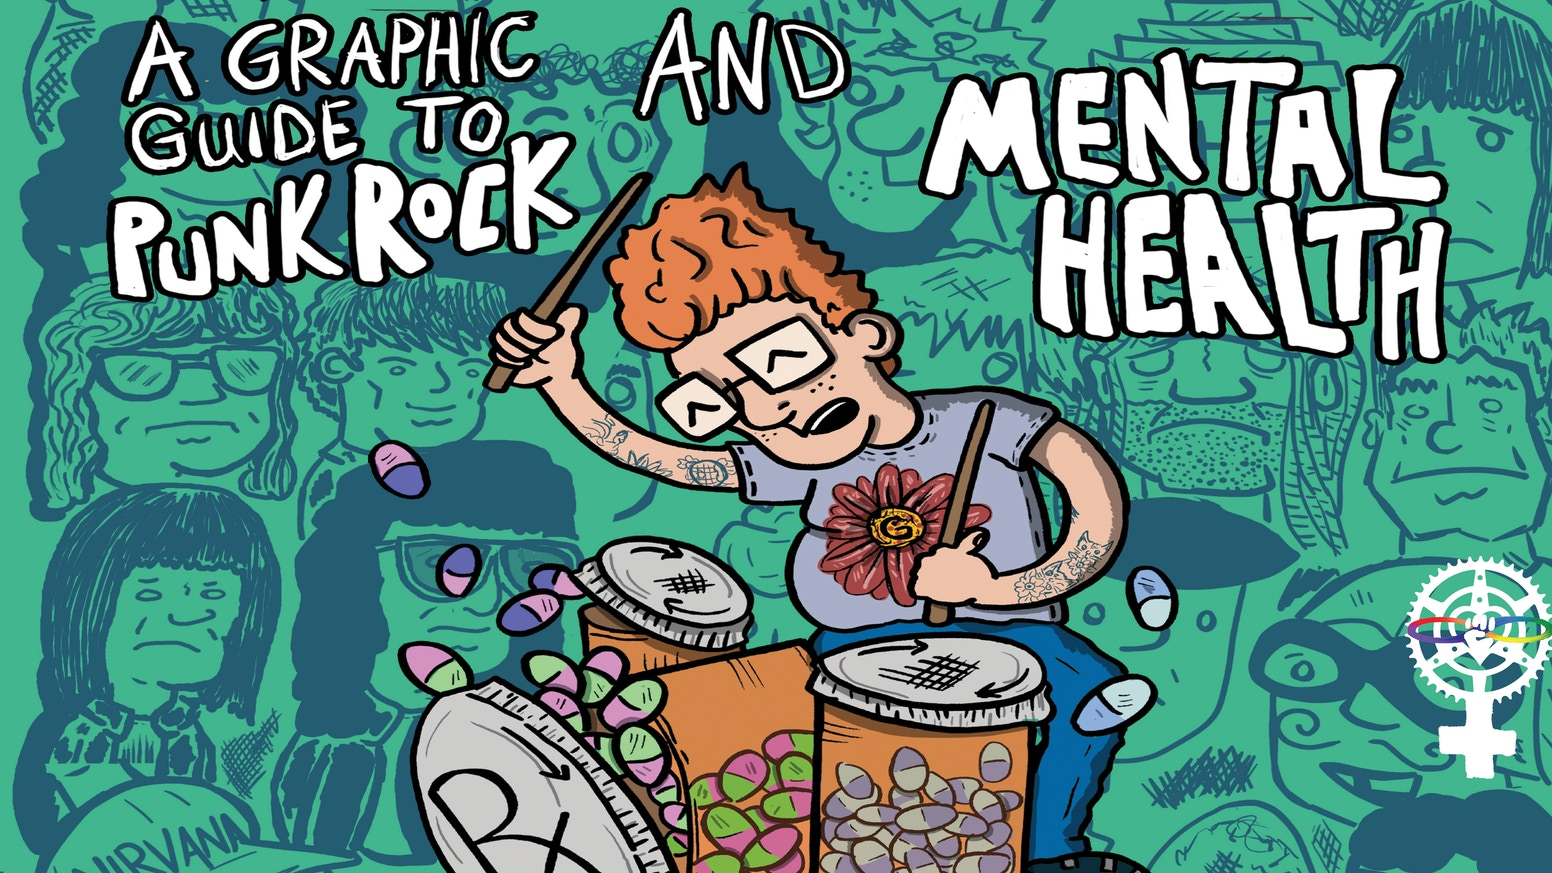 Reid Chancellor's graphic novel tracks the mental health struggles of great punk rockers, as well as his own experiences